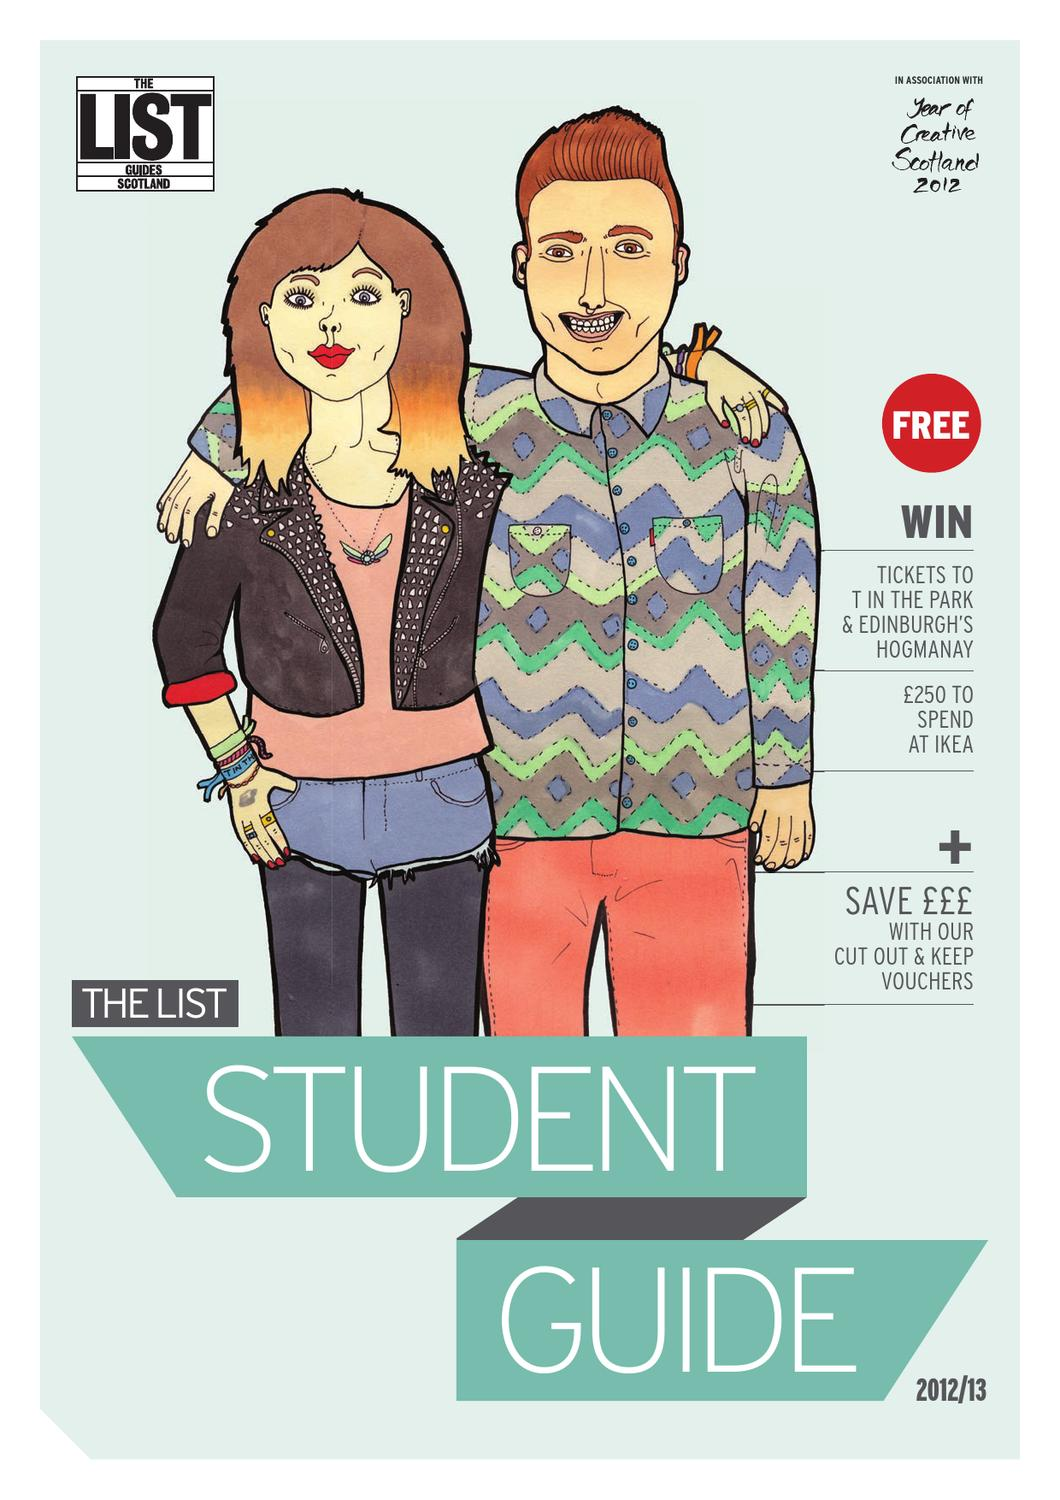 044f11441ef The List Student Guide 2012 by The List Ltd - issuu